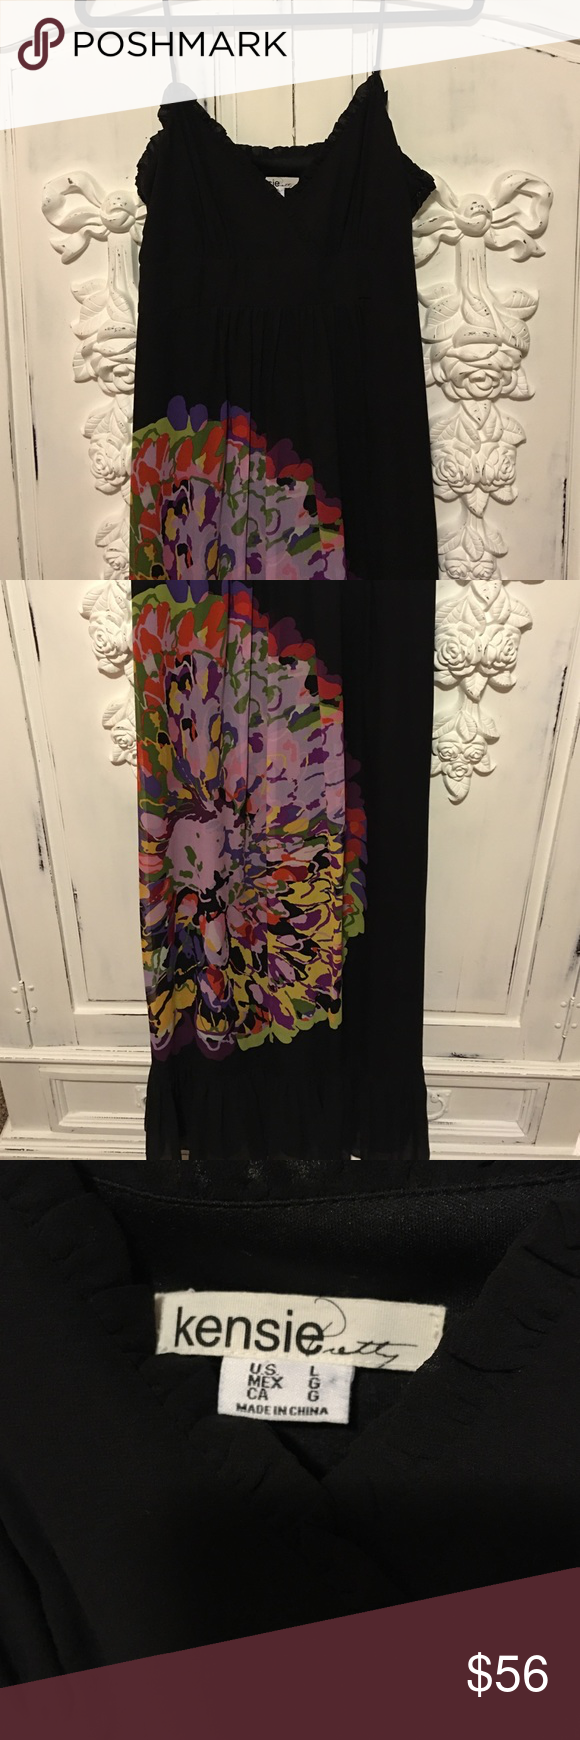 Kensie Maxi Dress Black maxi dress with large floral design. In like new condition. Kensie Dresses Maxi